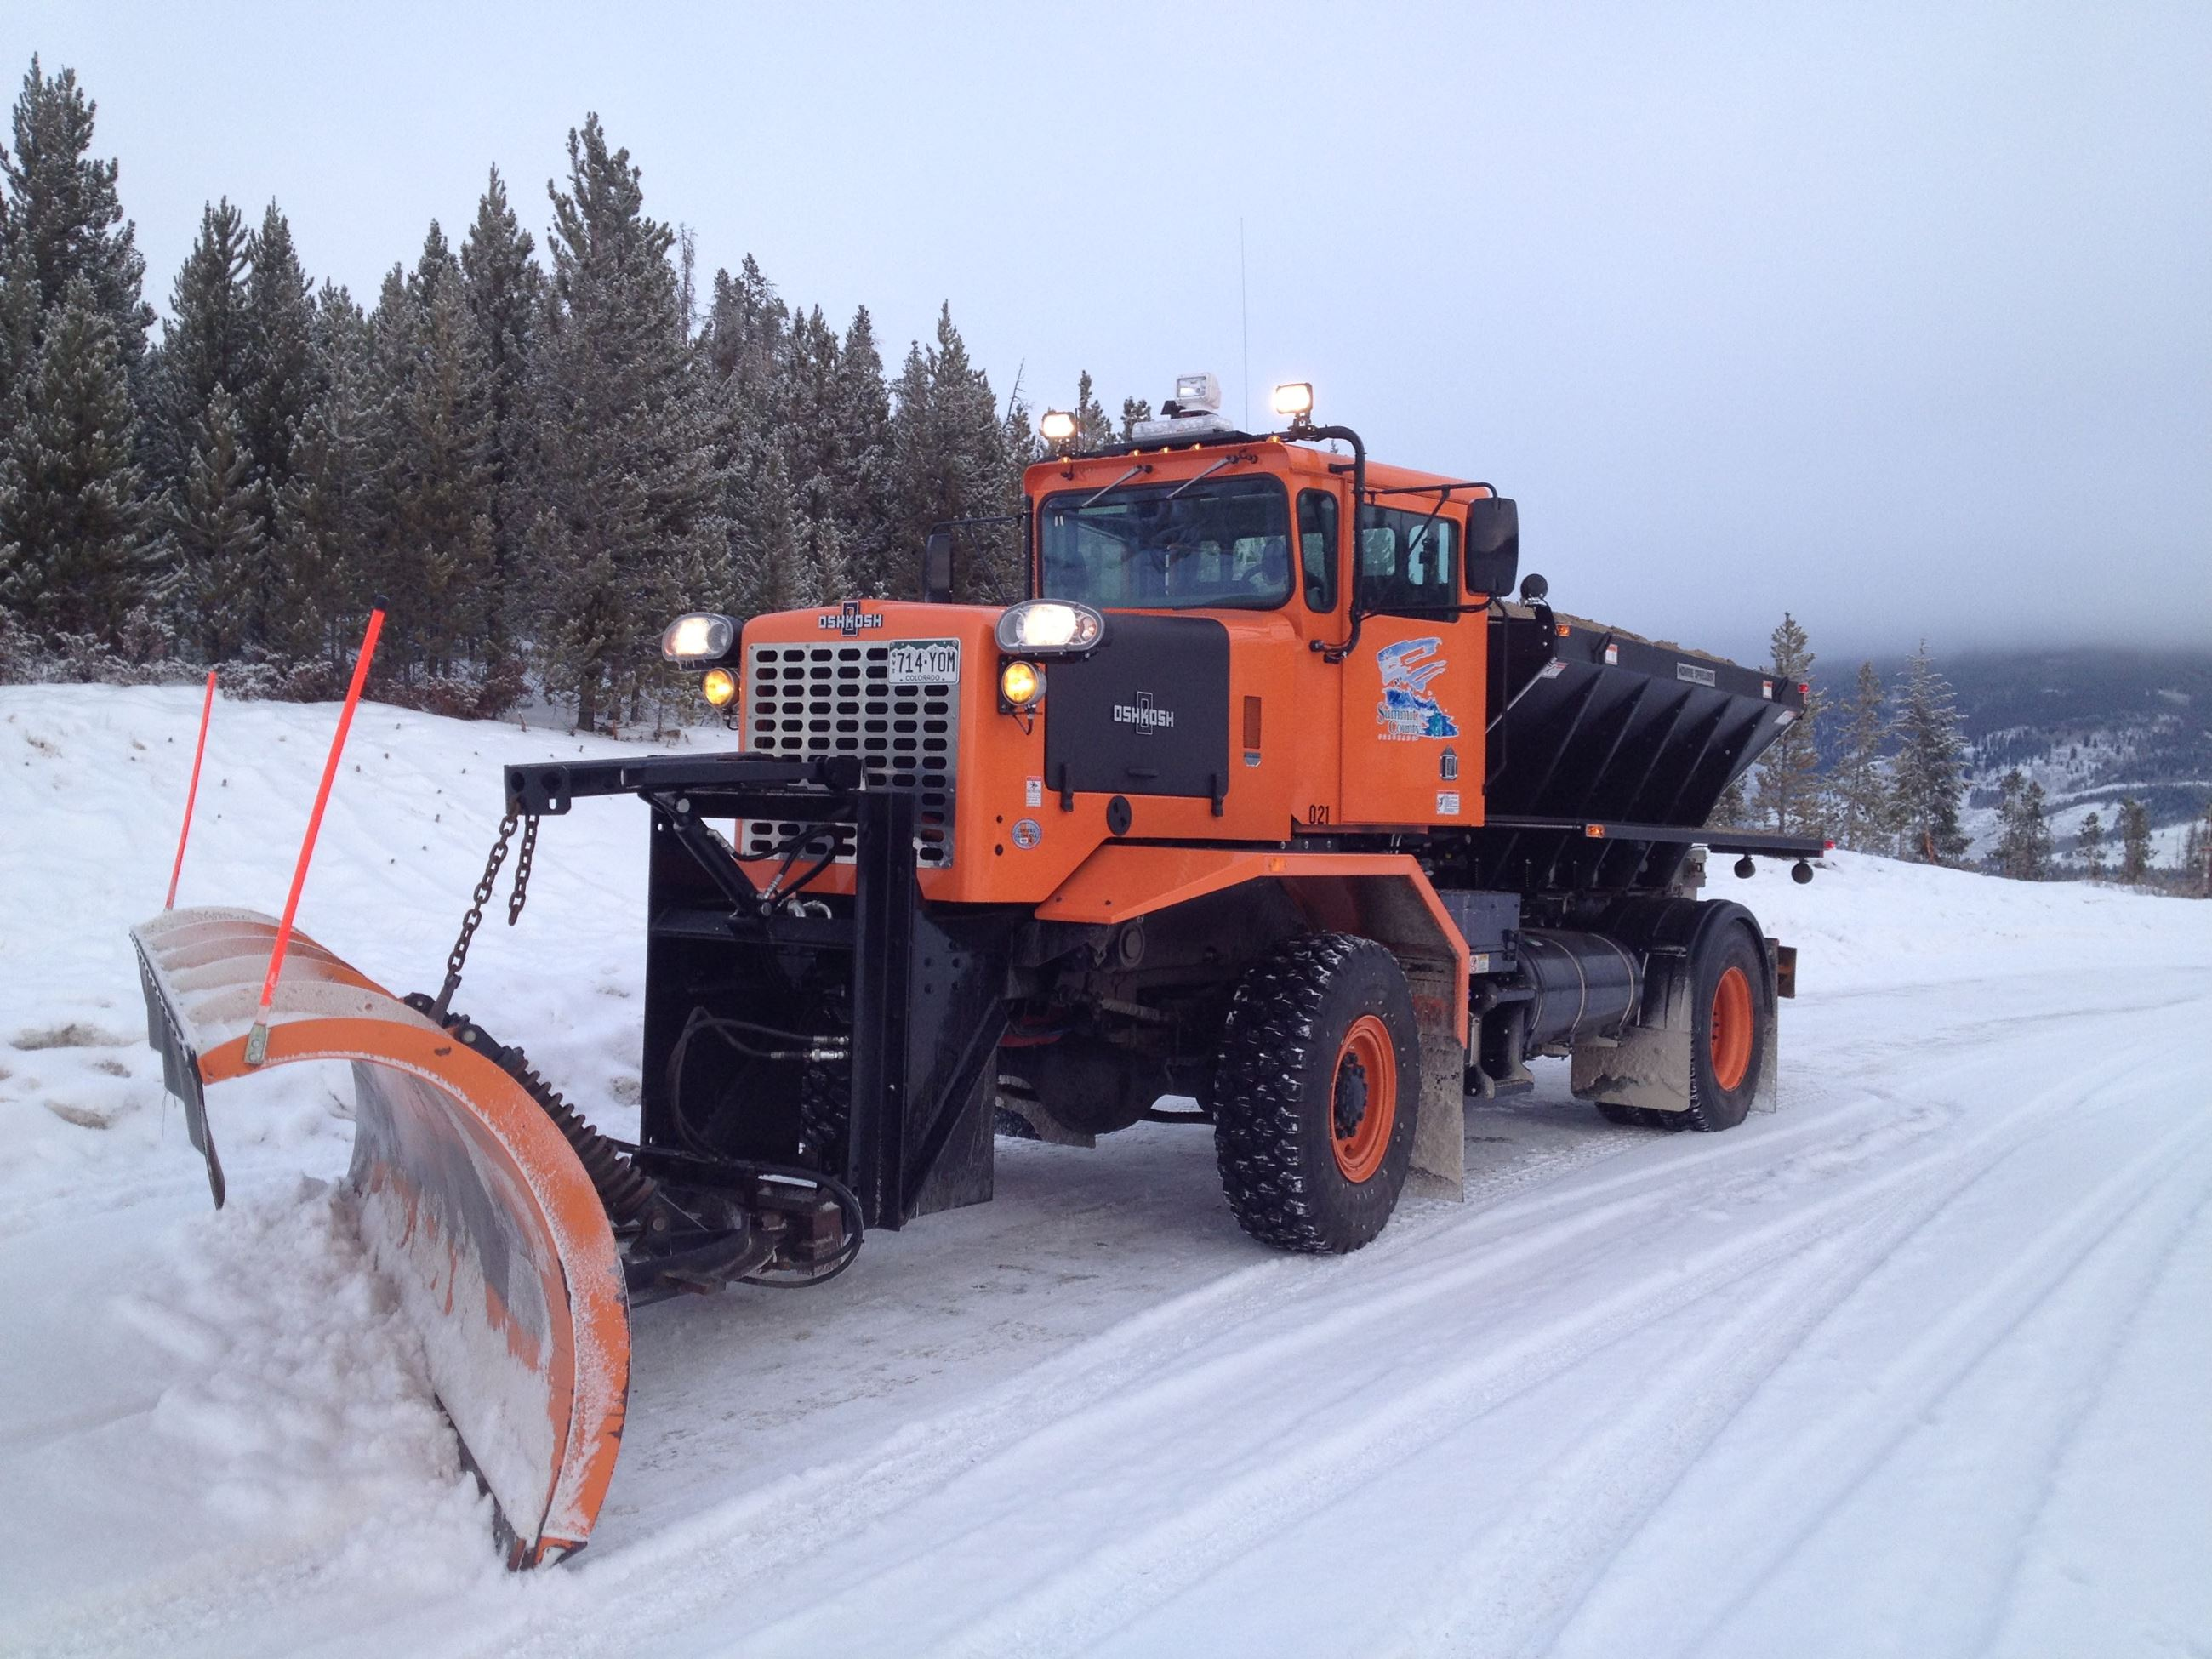 A Summit County plow clears a road of snow.